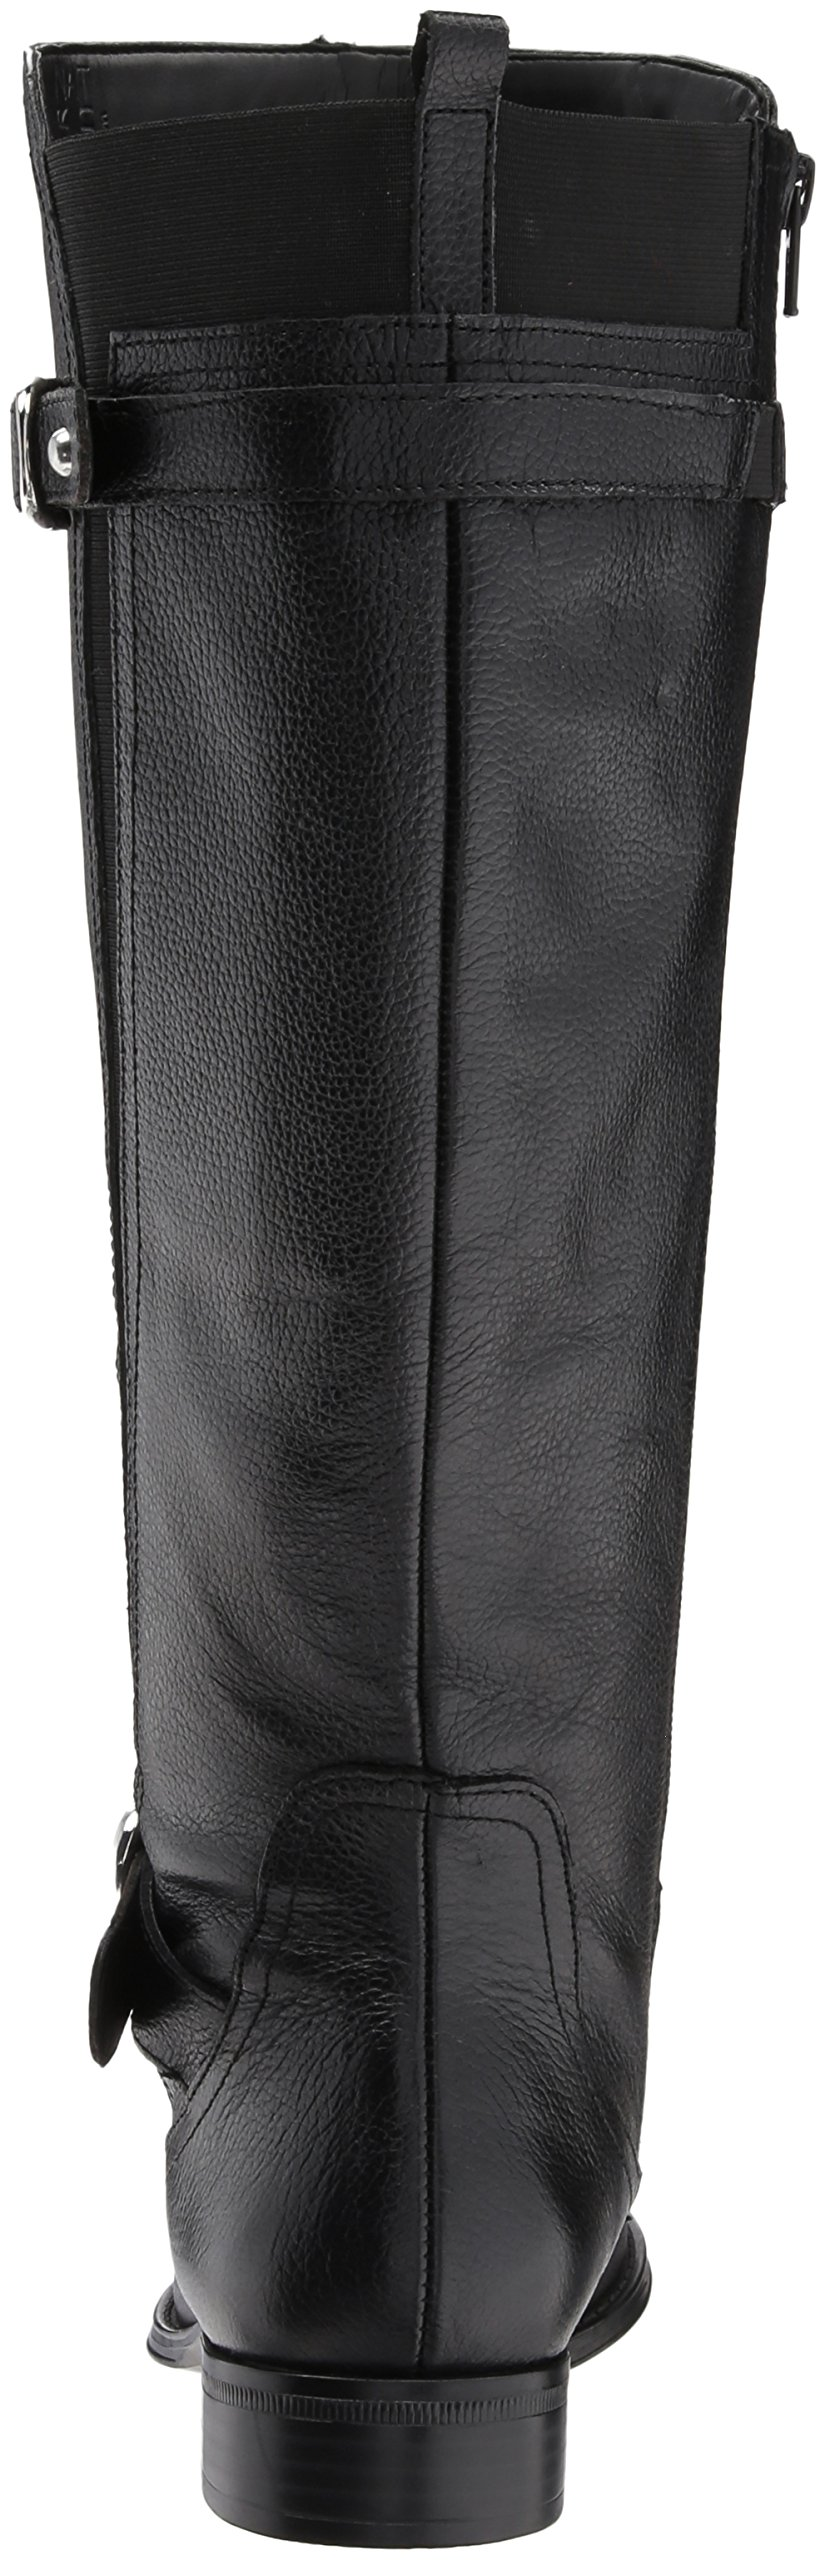 Naturalizer Women's Jenelle Wc Riding Boot, Black, 7.5 M US by Naturalizer (Image #2)